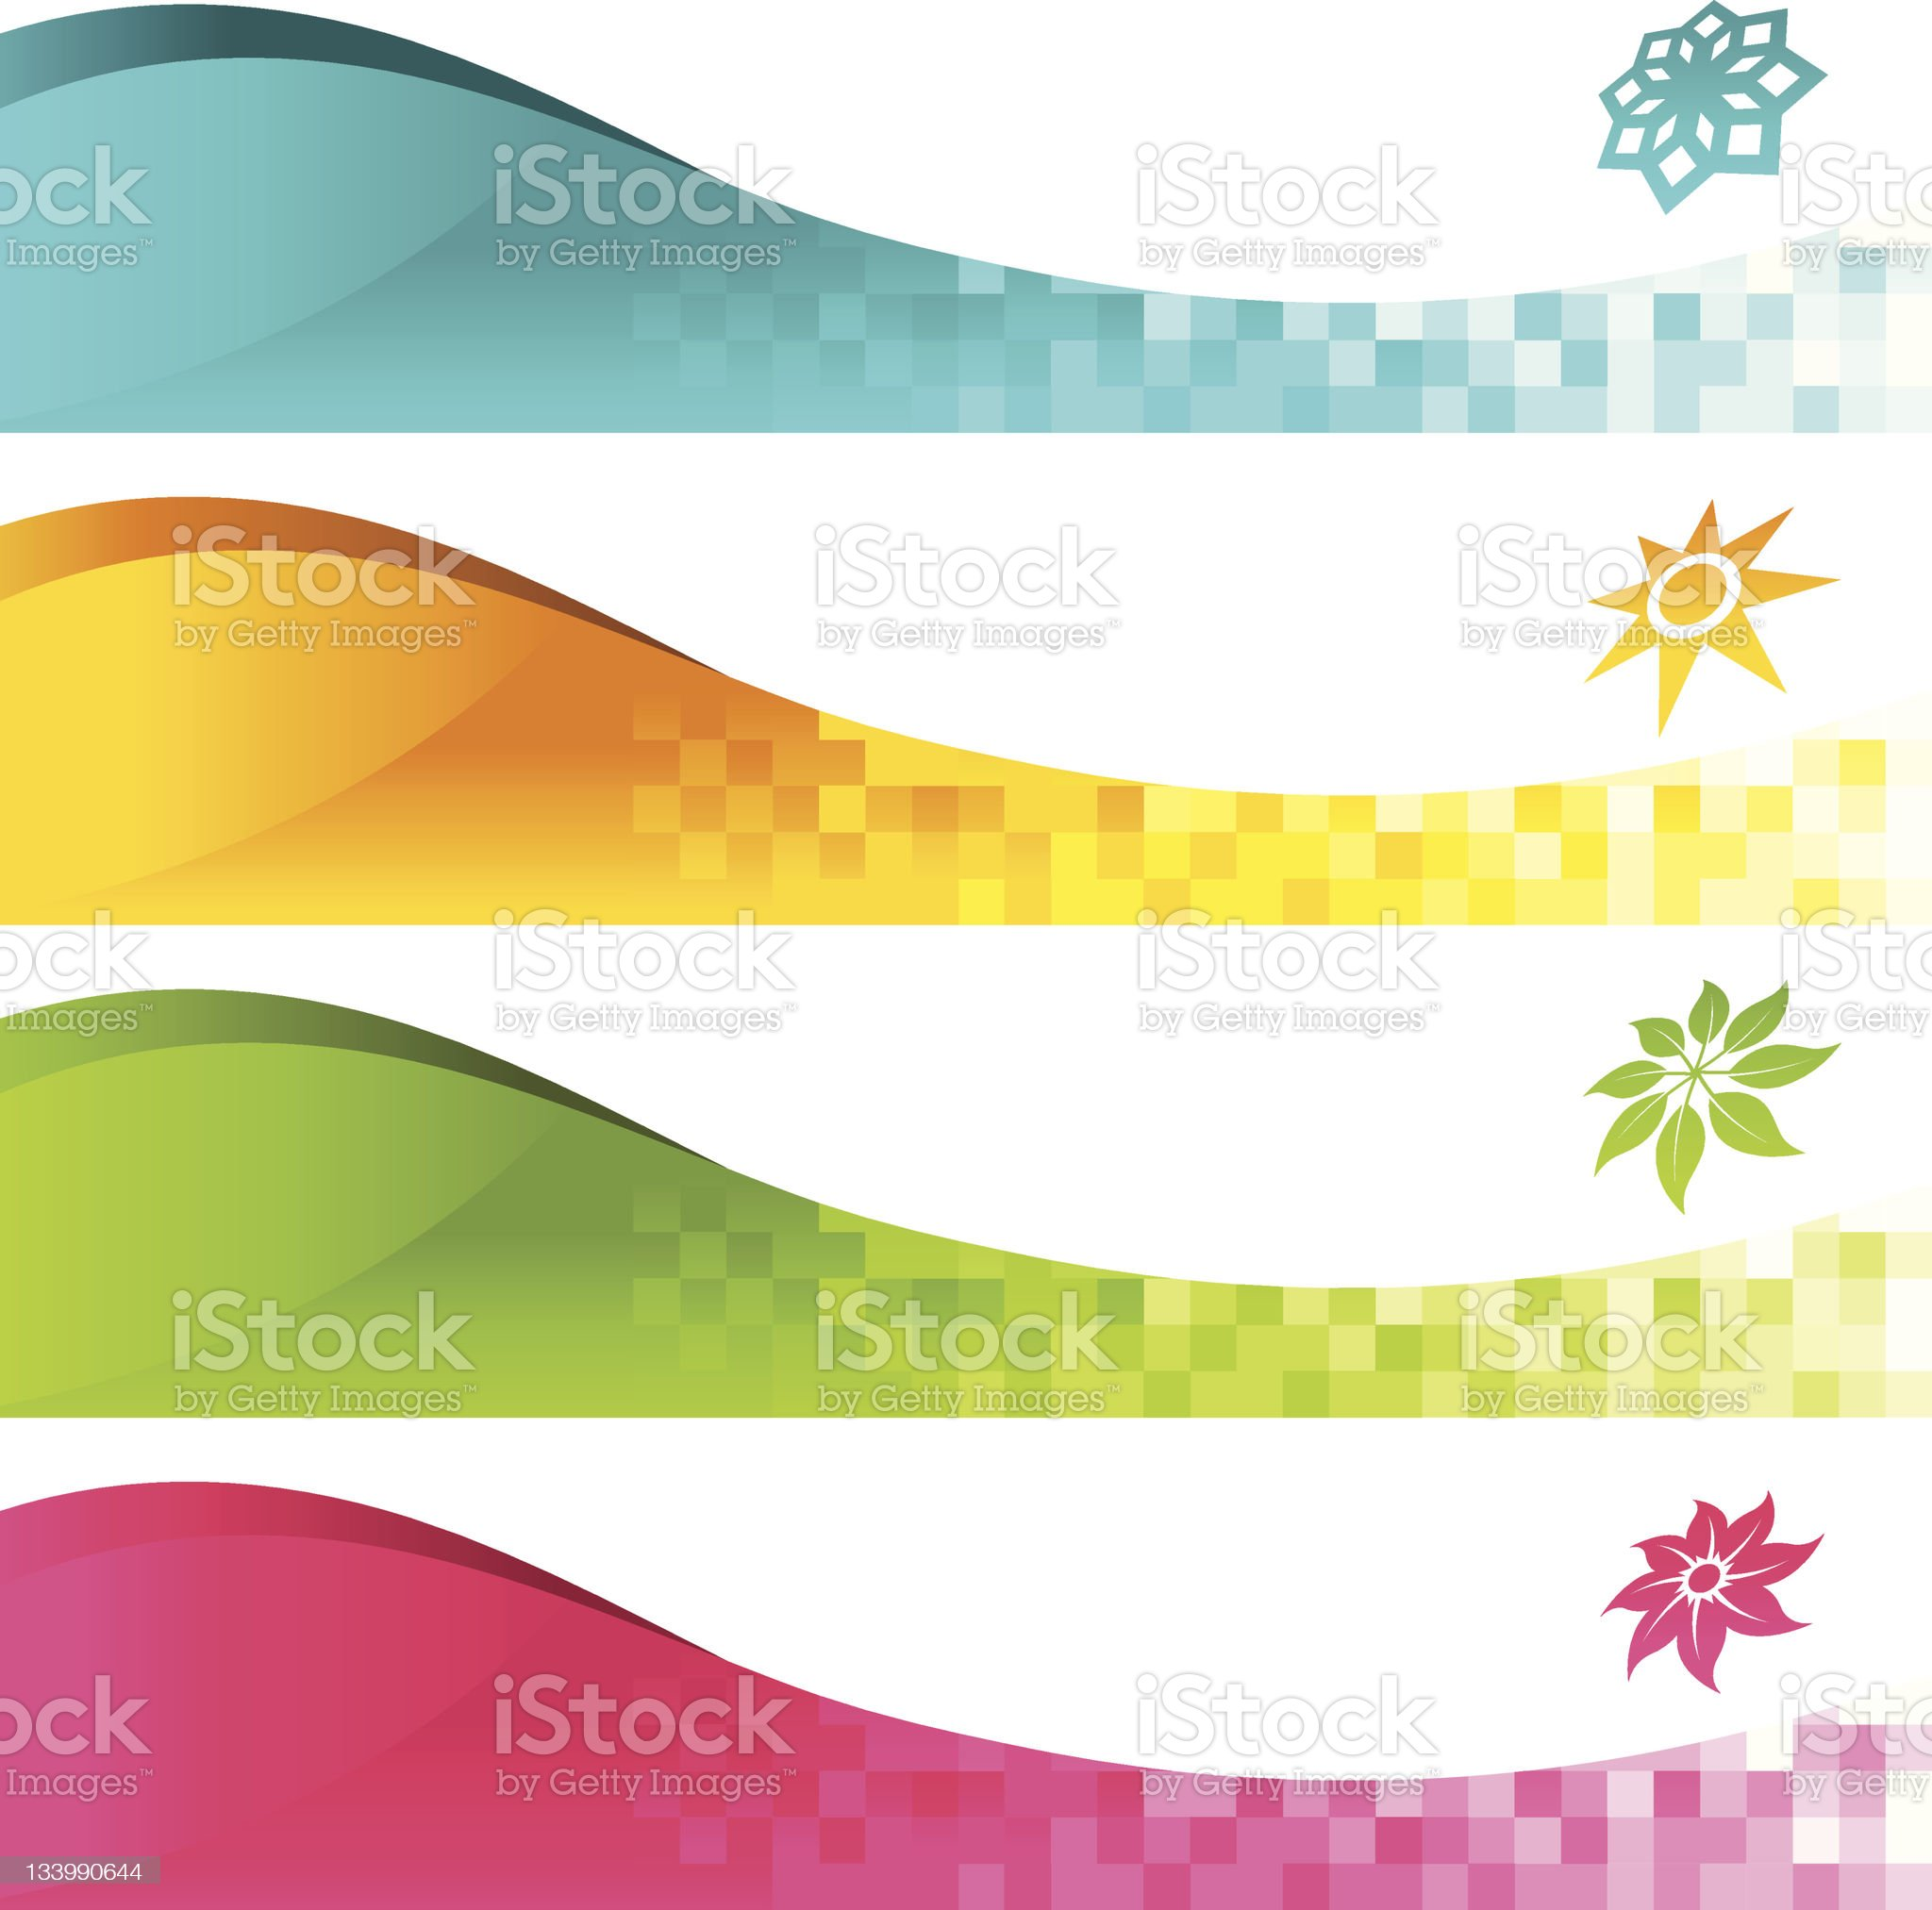 Colorful Banner Icons royalty-free stock vector art